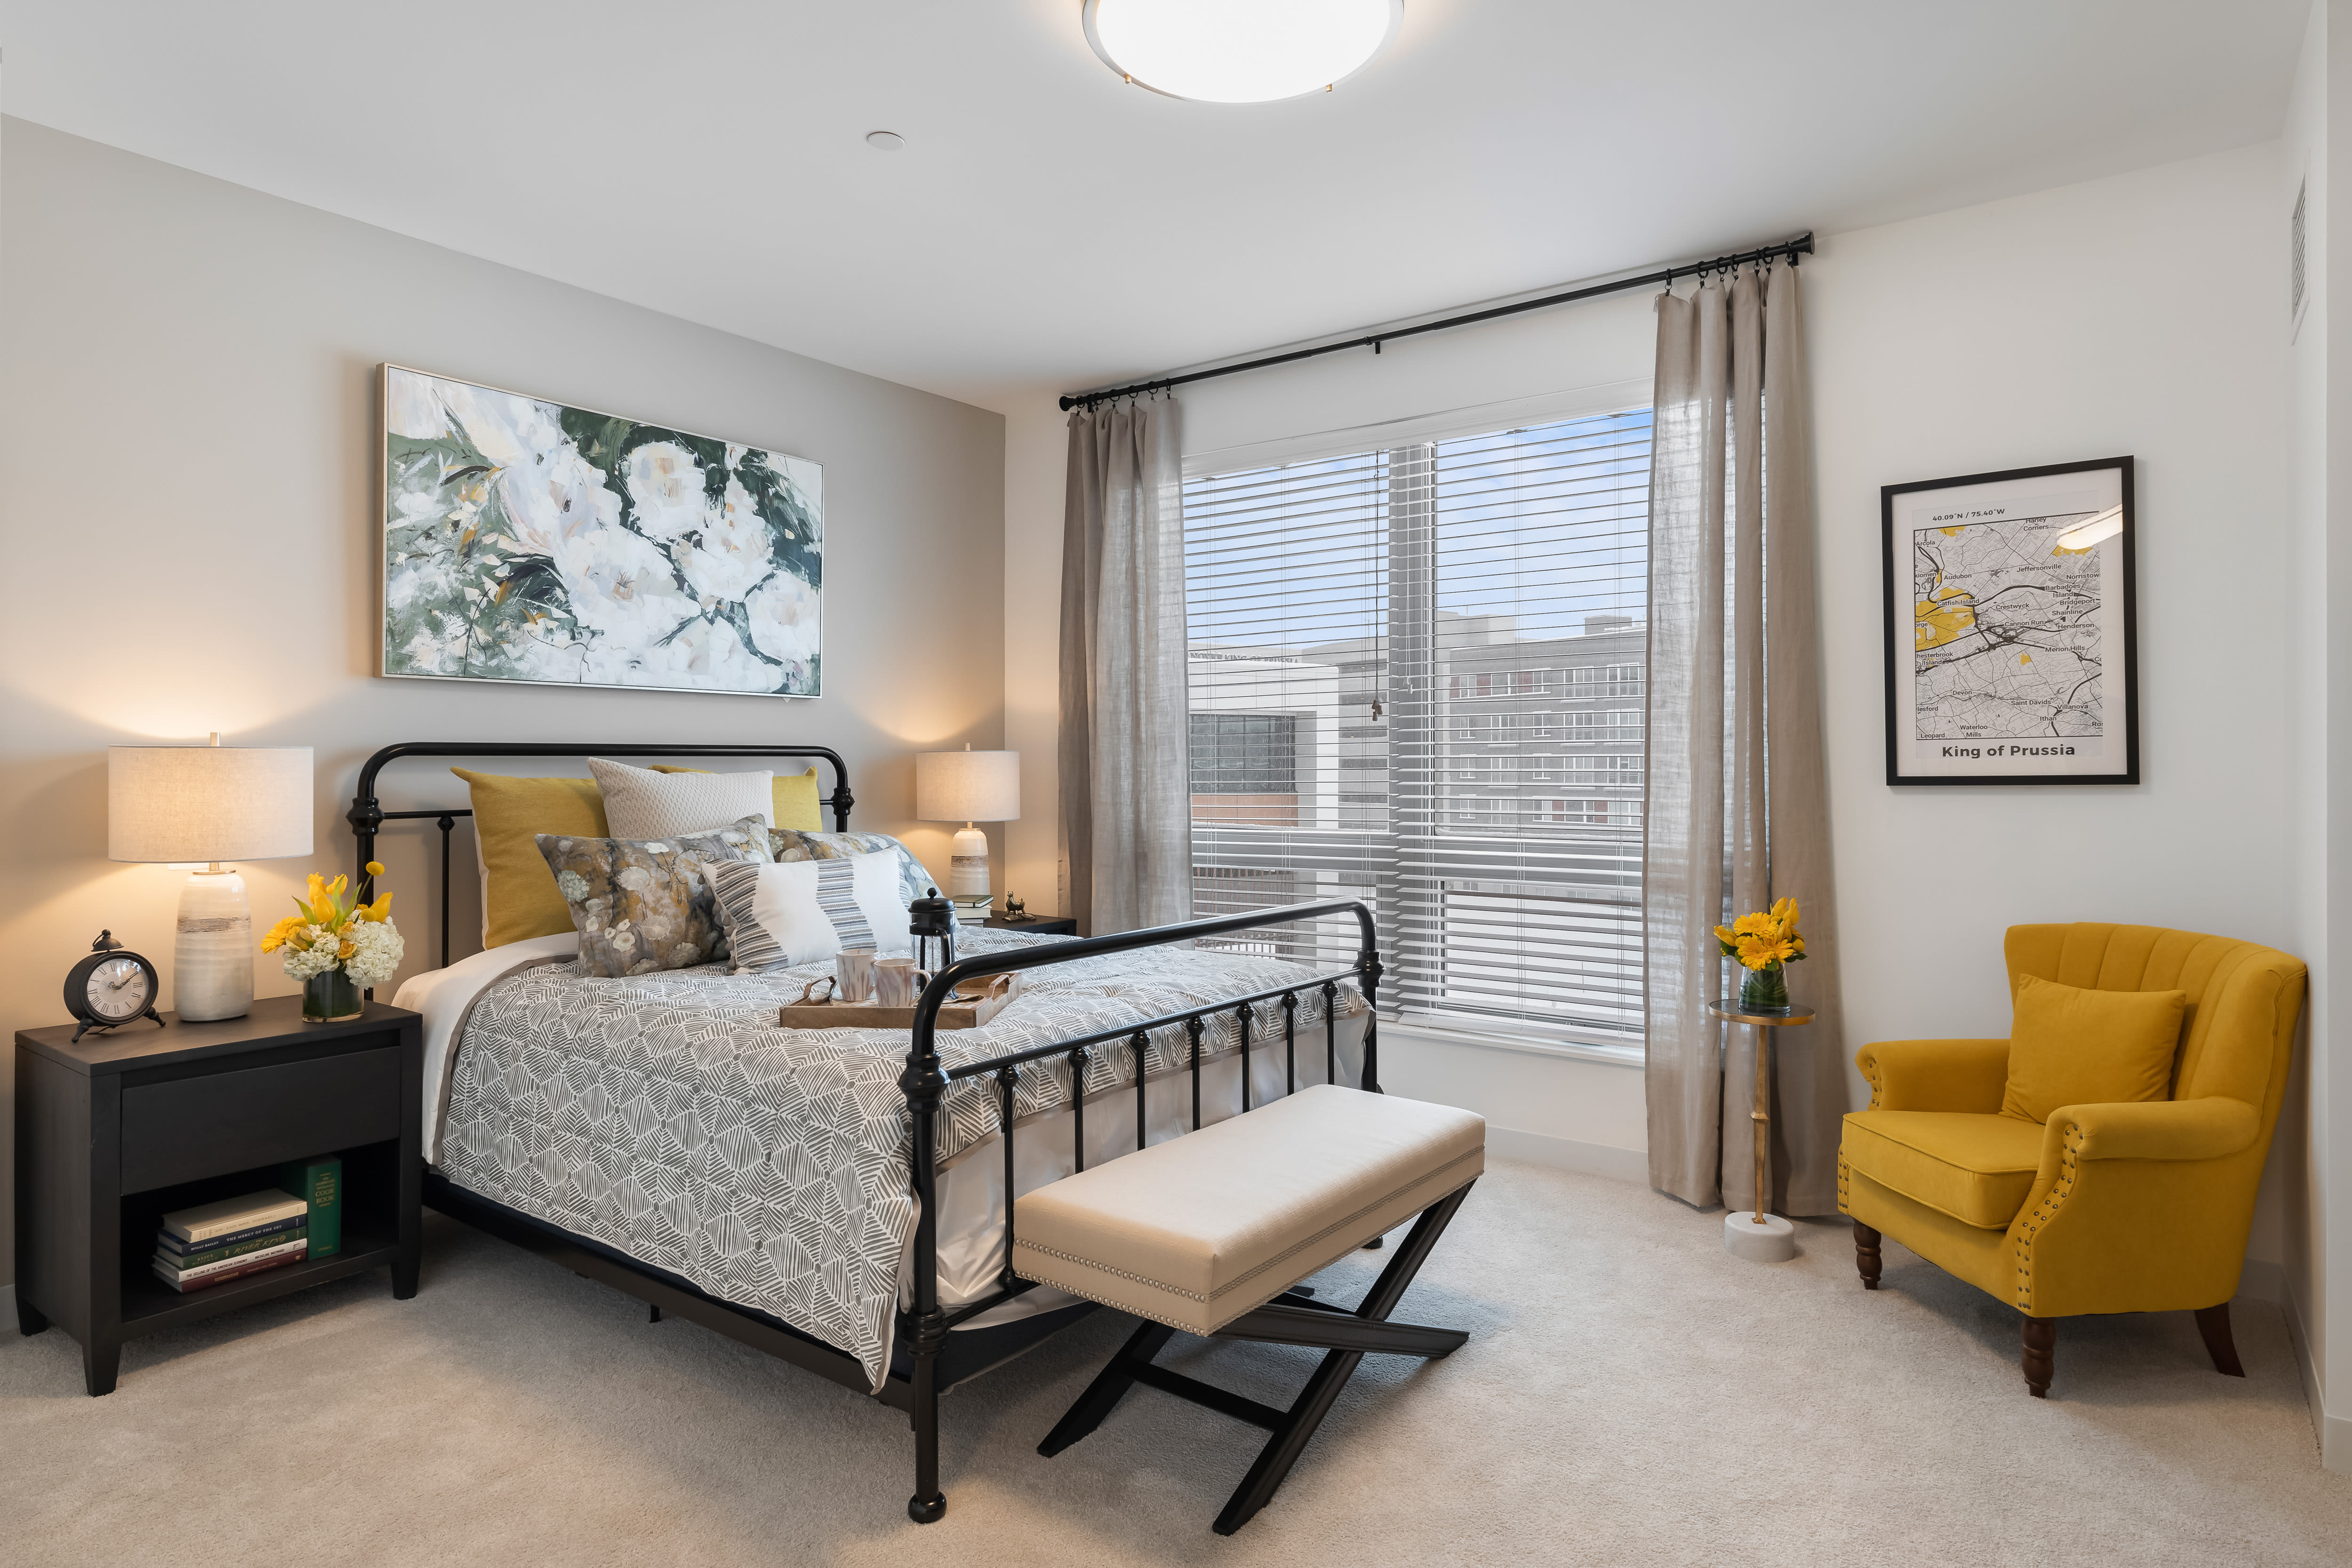 Bedroom at Anthology of King of Prussia – Now Open in King of Prussia, Pennsylvania